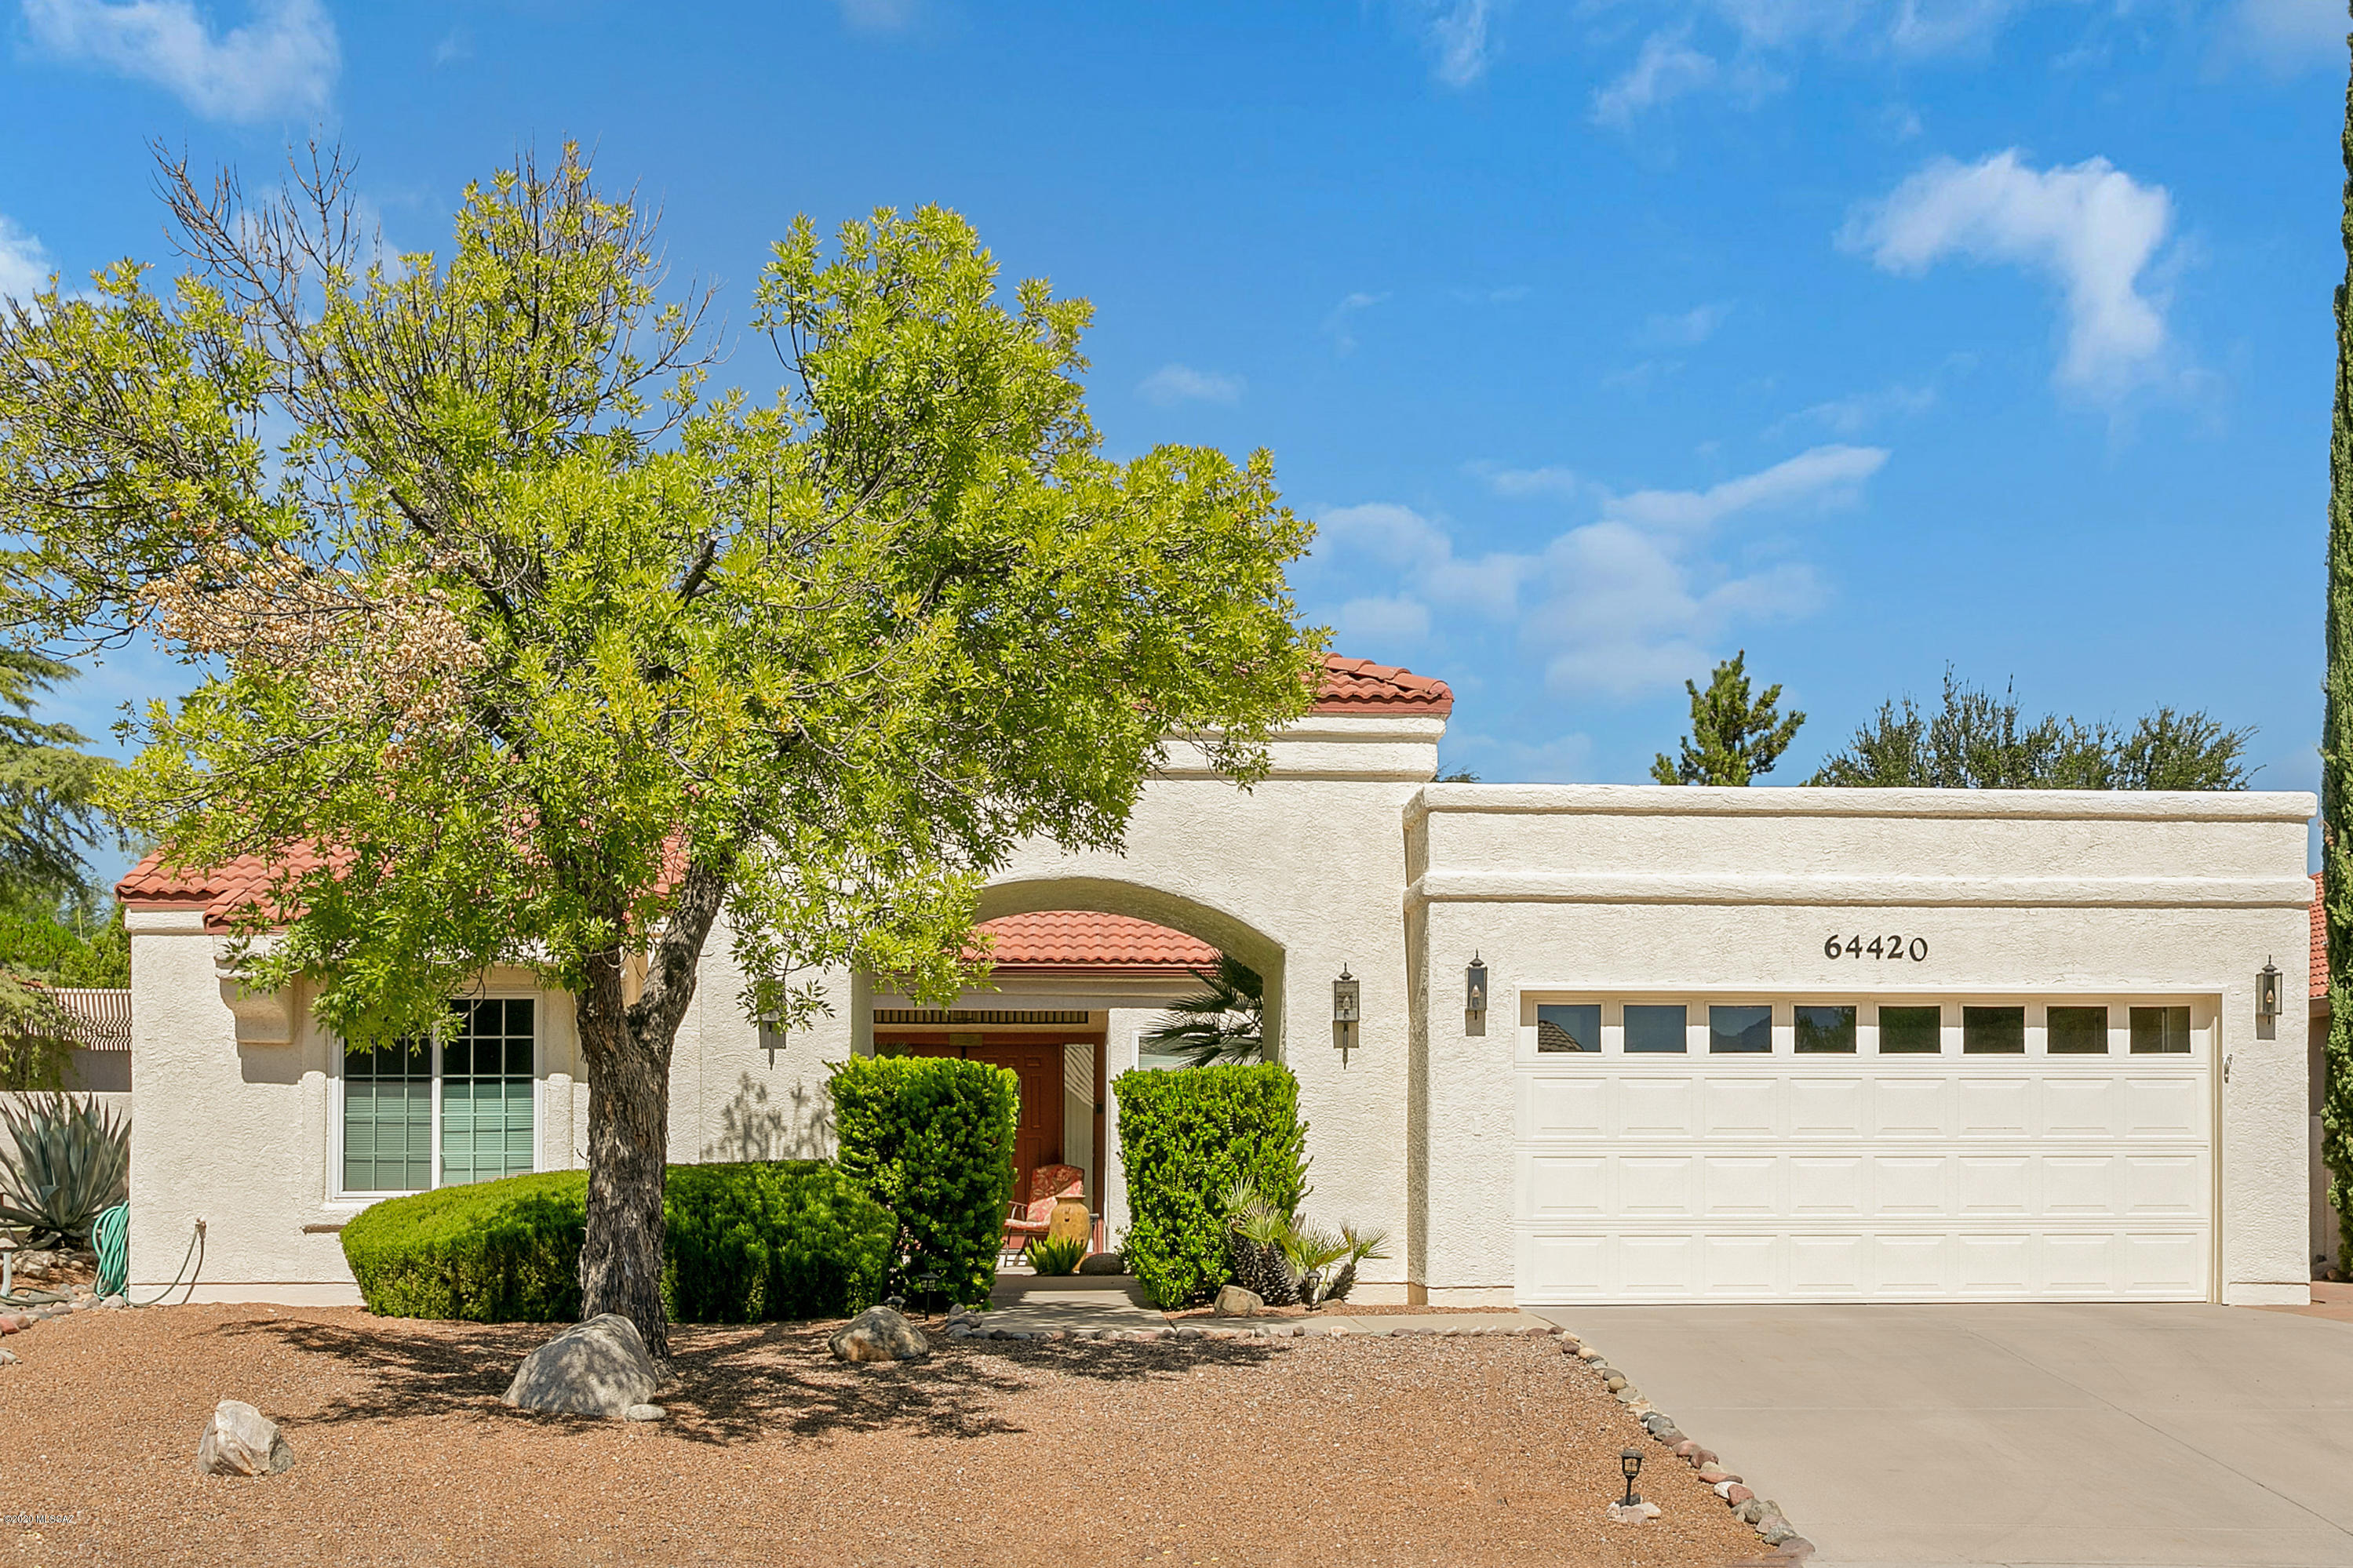 Photo of 64420 E Coronado Court, Saddlebrooke, AZ 85739